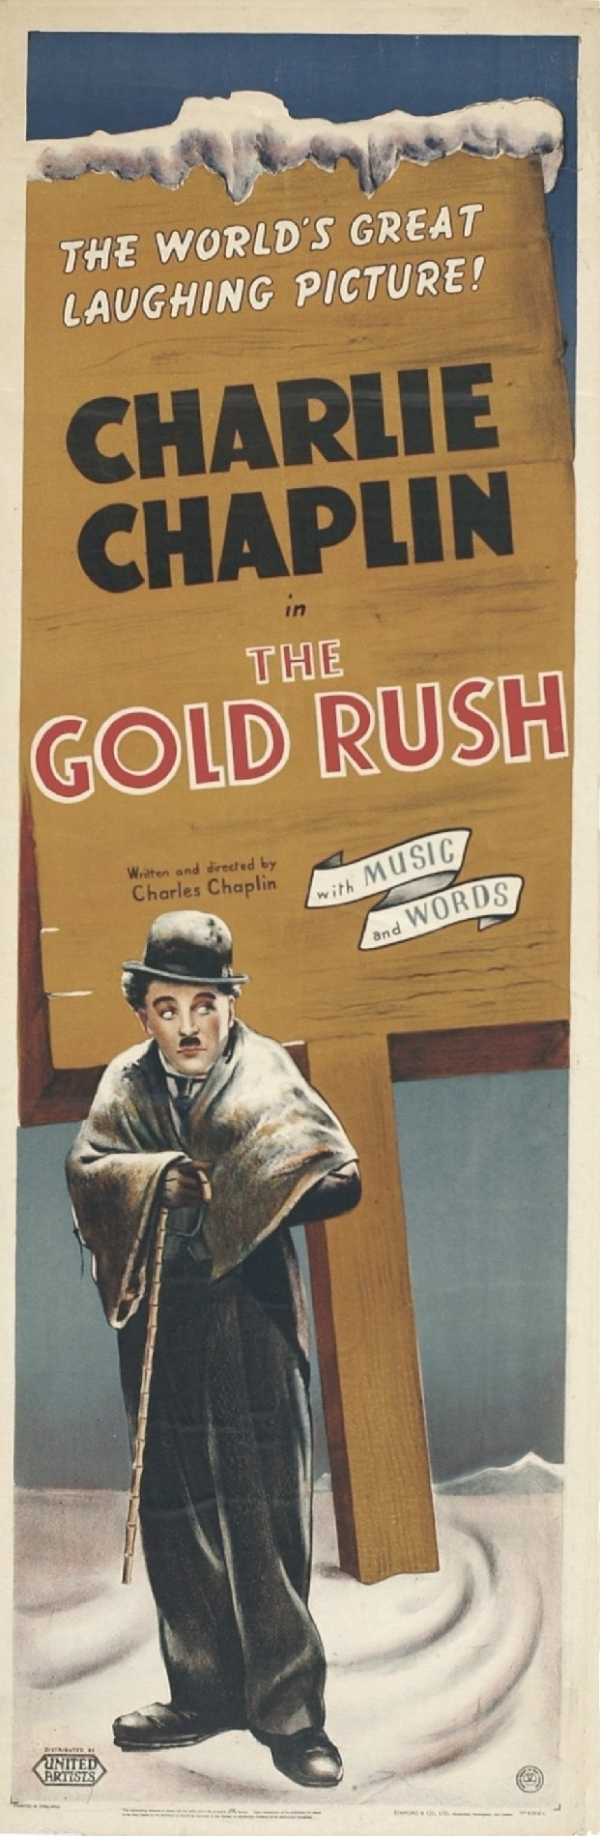 The Gold Rush Posters Movie - Charlie Chaplin Fan Art (10000900 ...